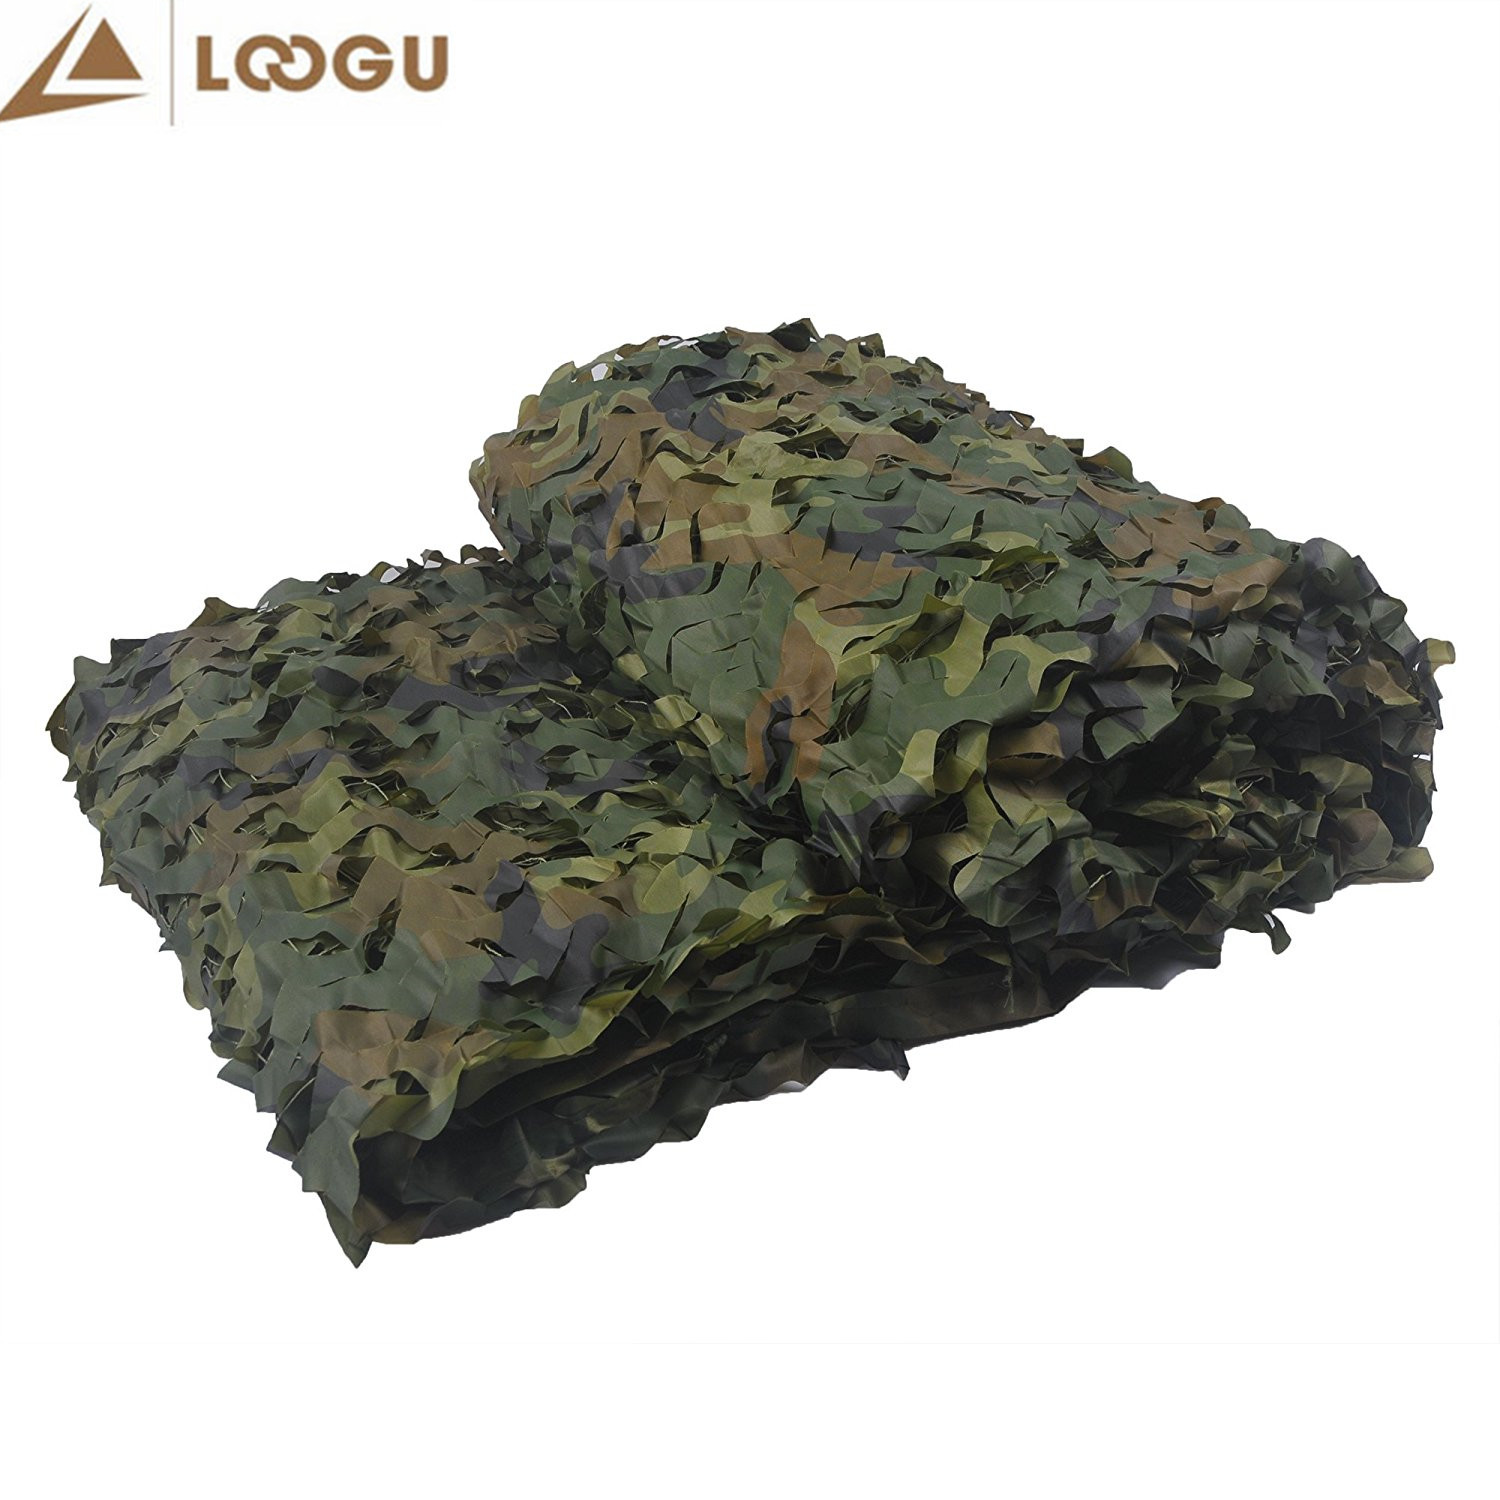 3M *6M Woodland Digital Camo Netting Sun Shelter Military Jungle Camouflage Net Sun Shelter for Hunting Camping Tourist Sun Tent wholesale 6m 8m car covers green military camouflage net sun shelter camouflage net tent car covers camouflage netting tent